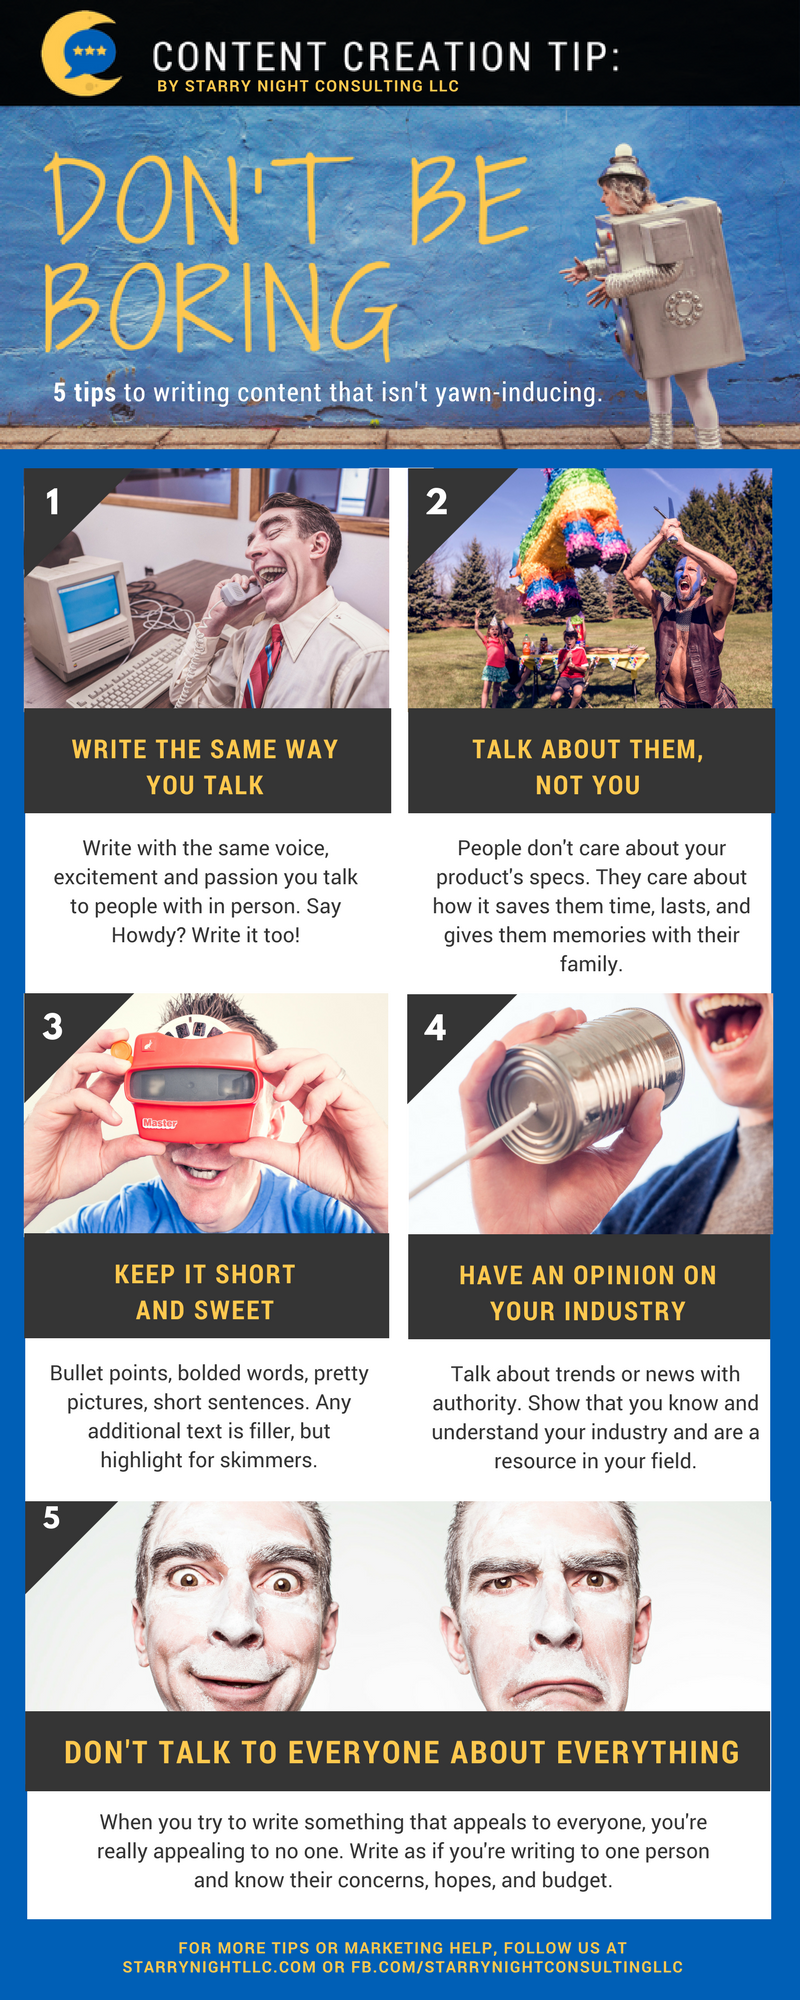 5 Content Creation Tips: Don't Be Boring